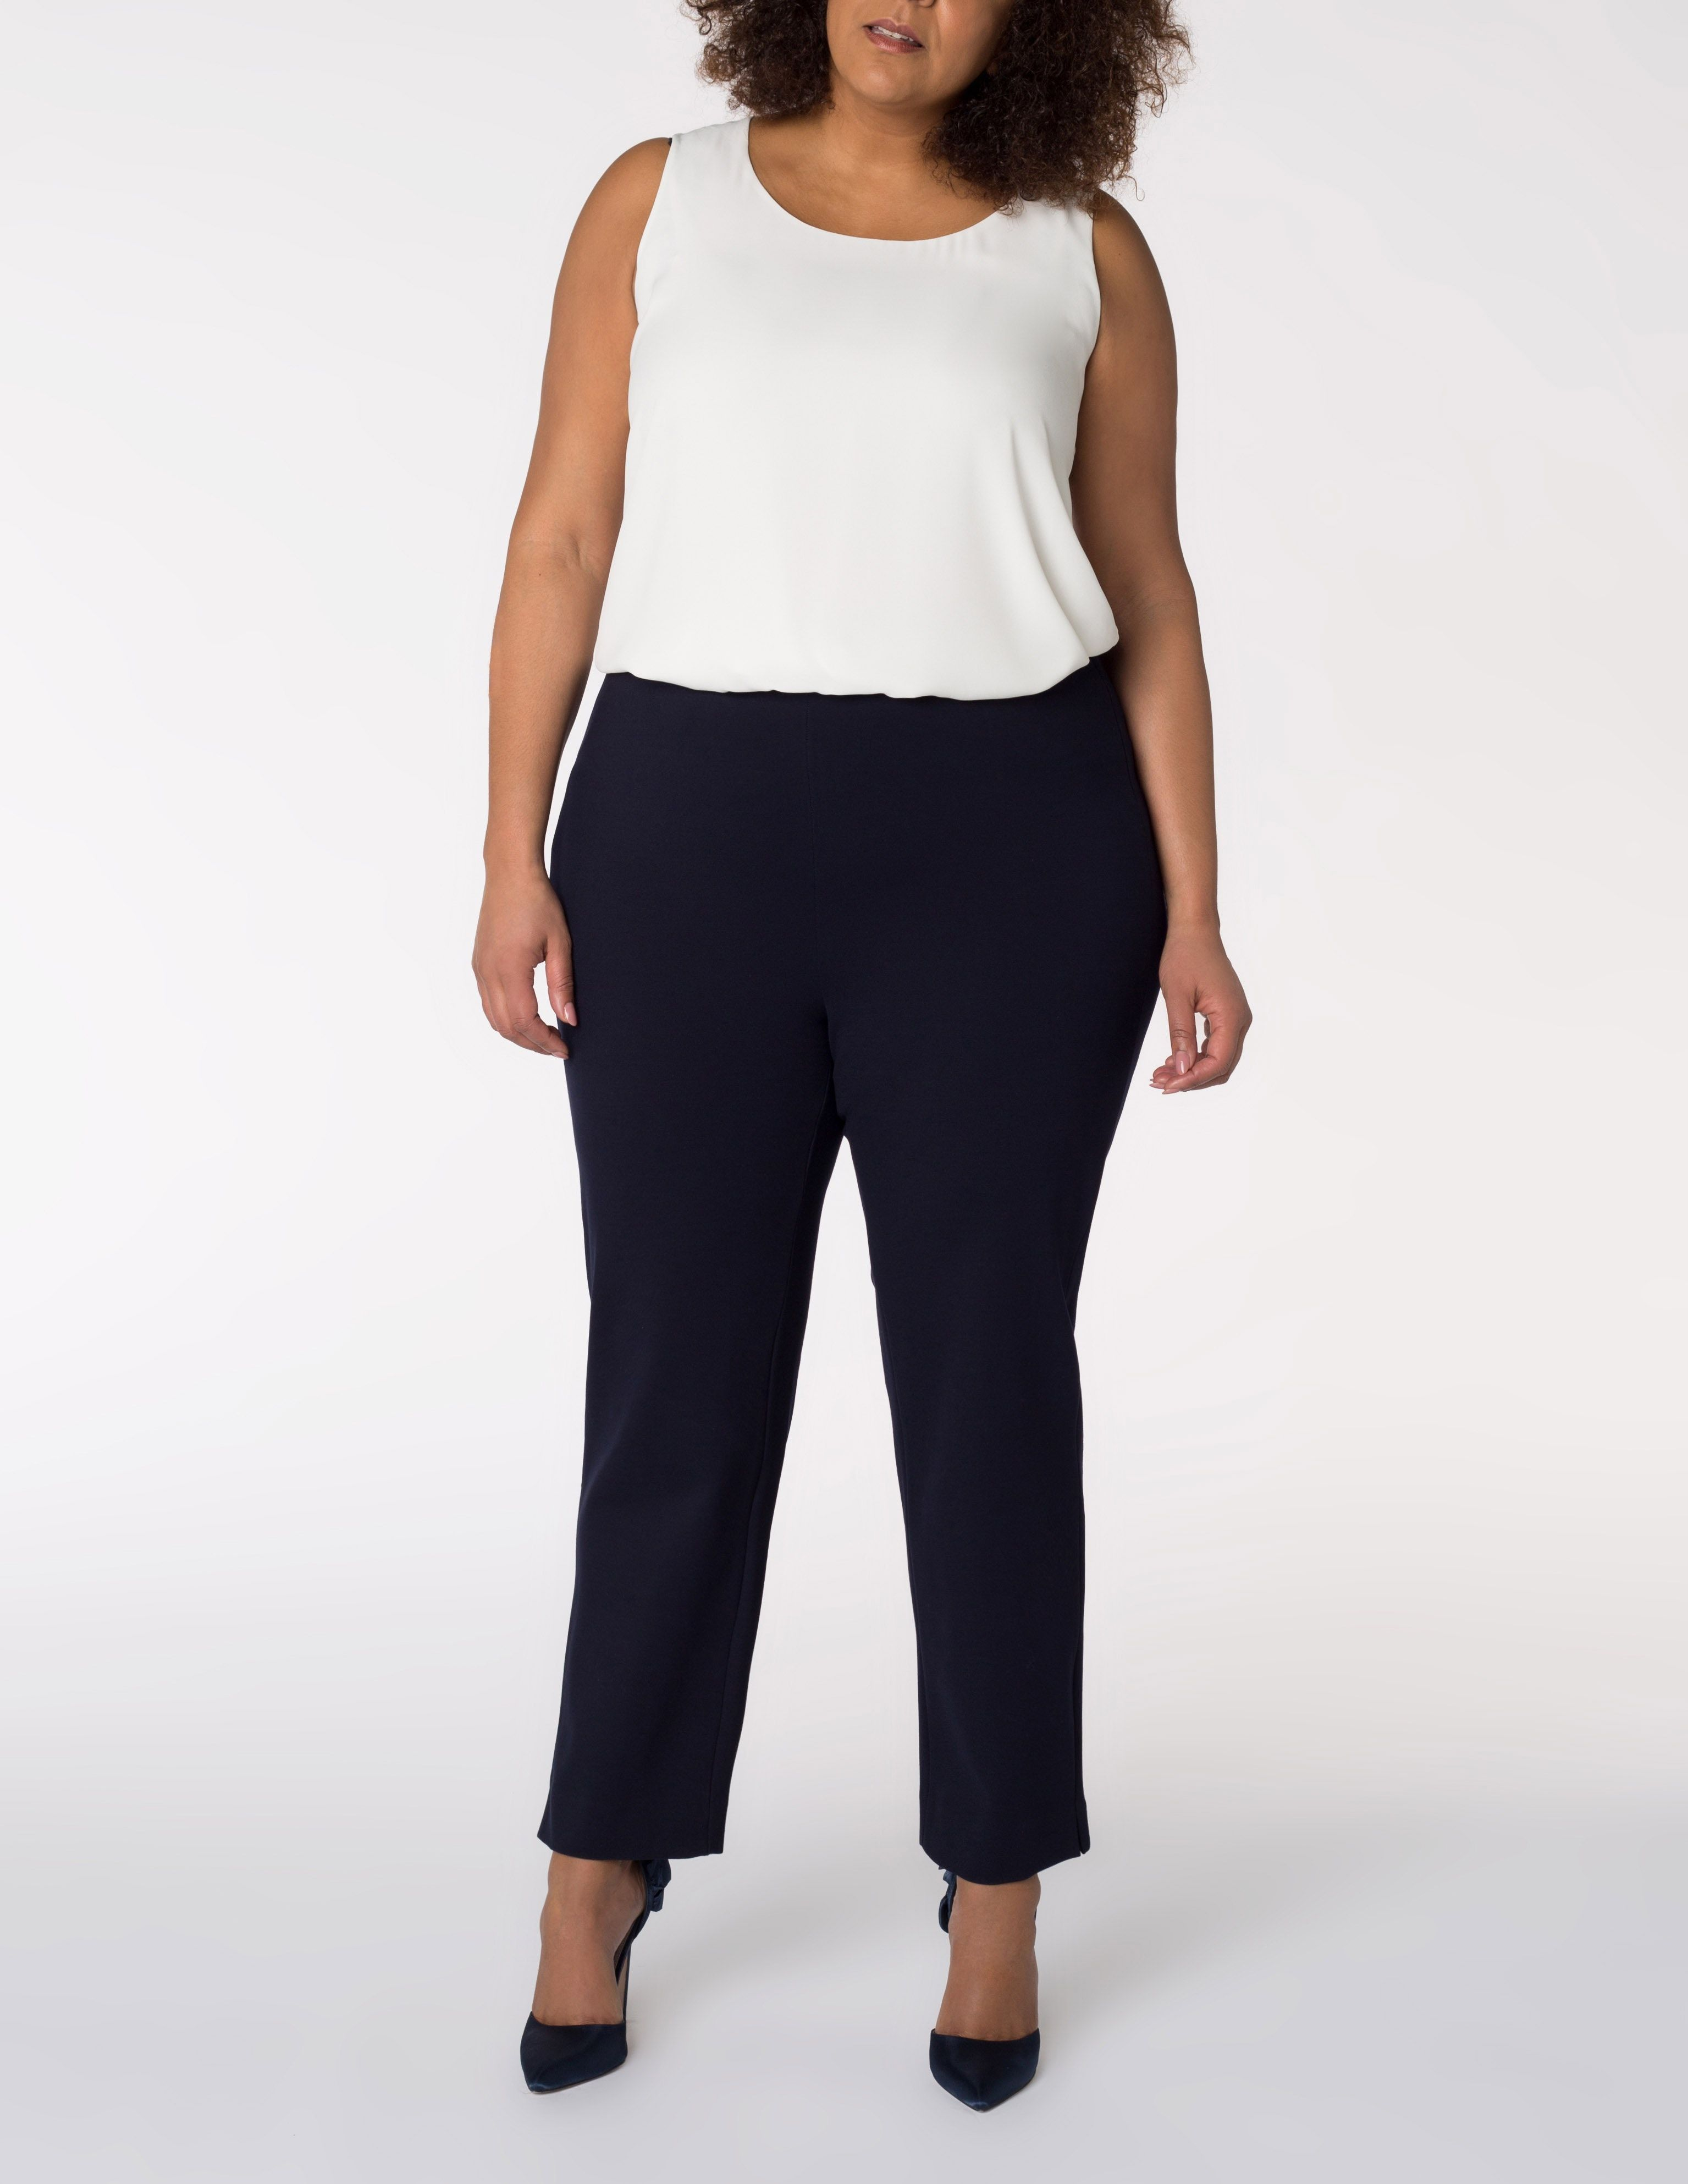 slimline trousers in petite and tall in dark-blue designed